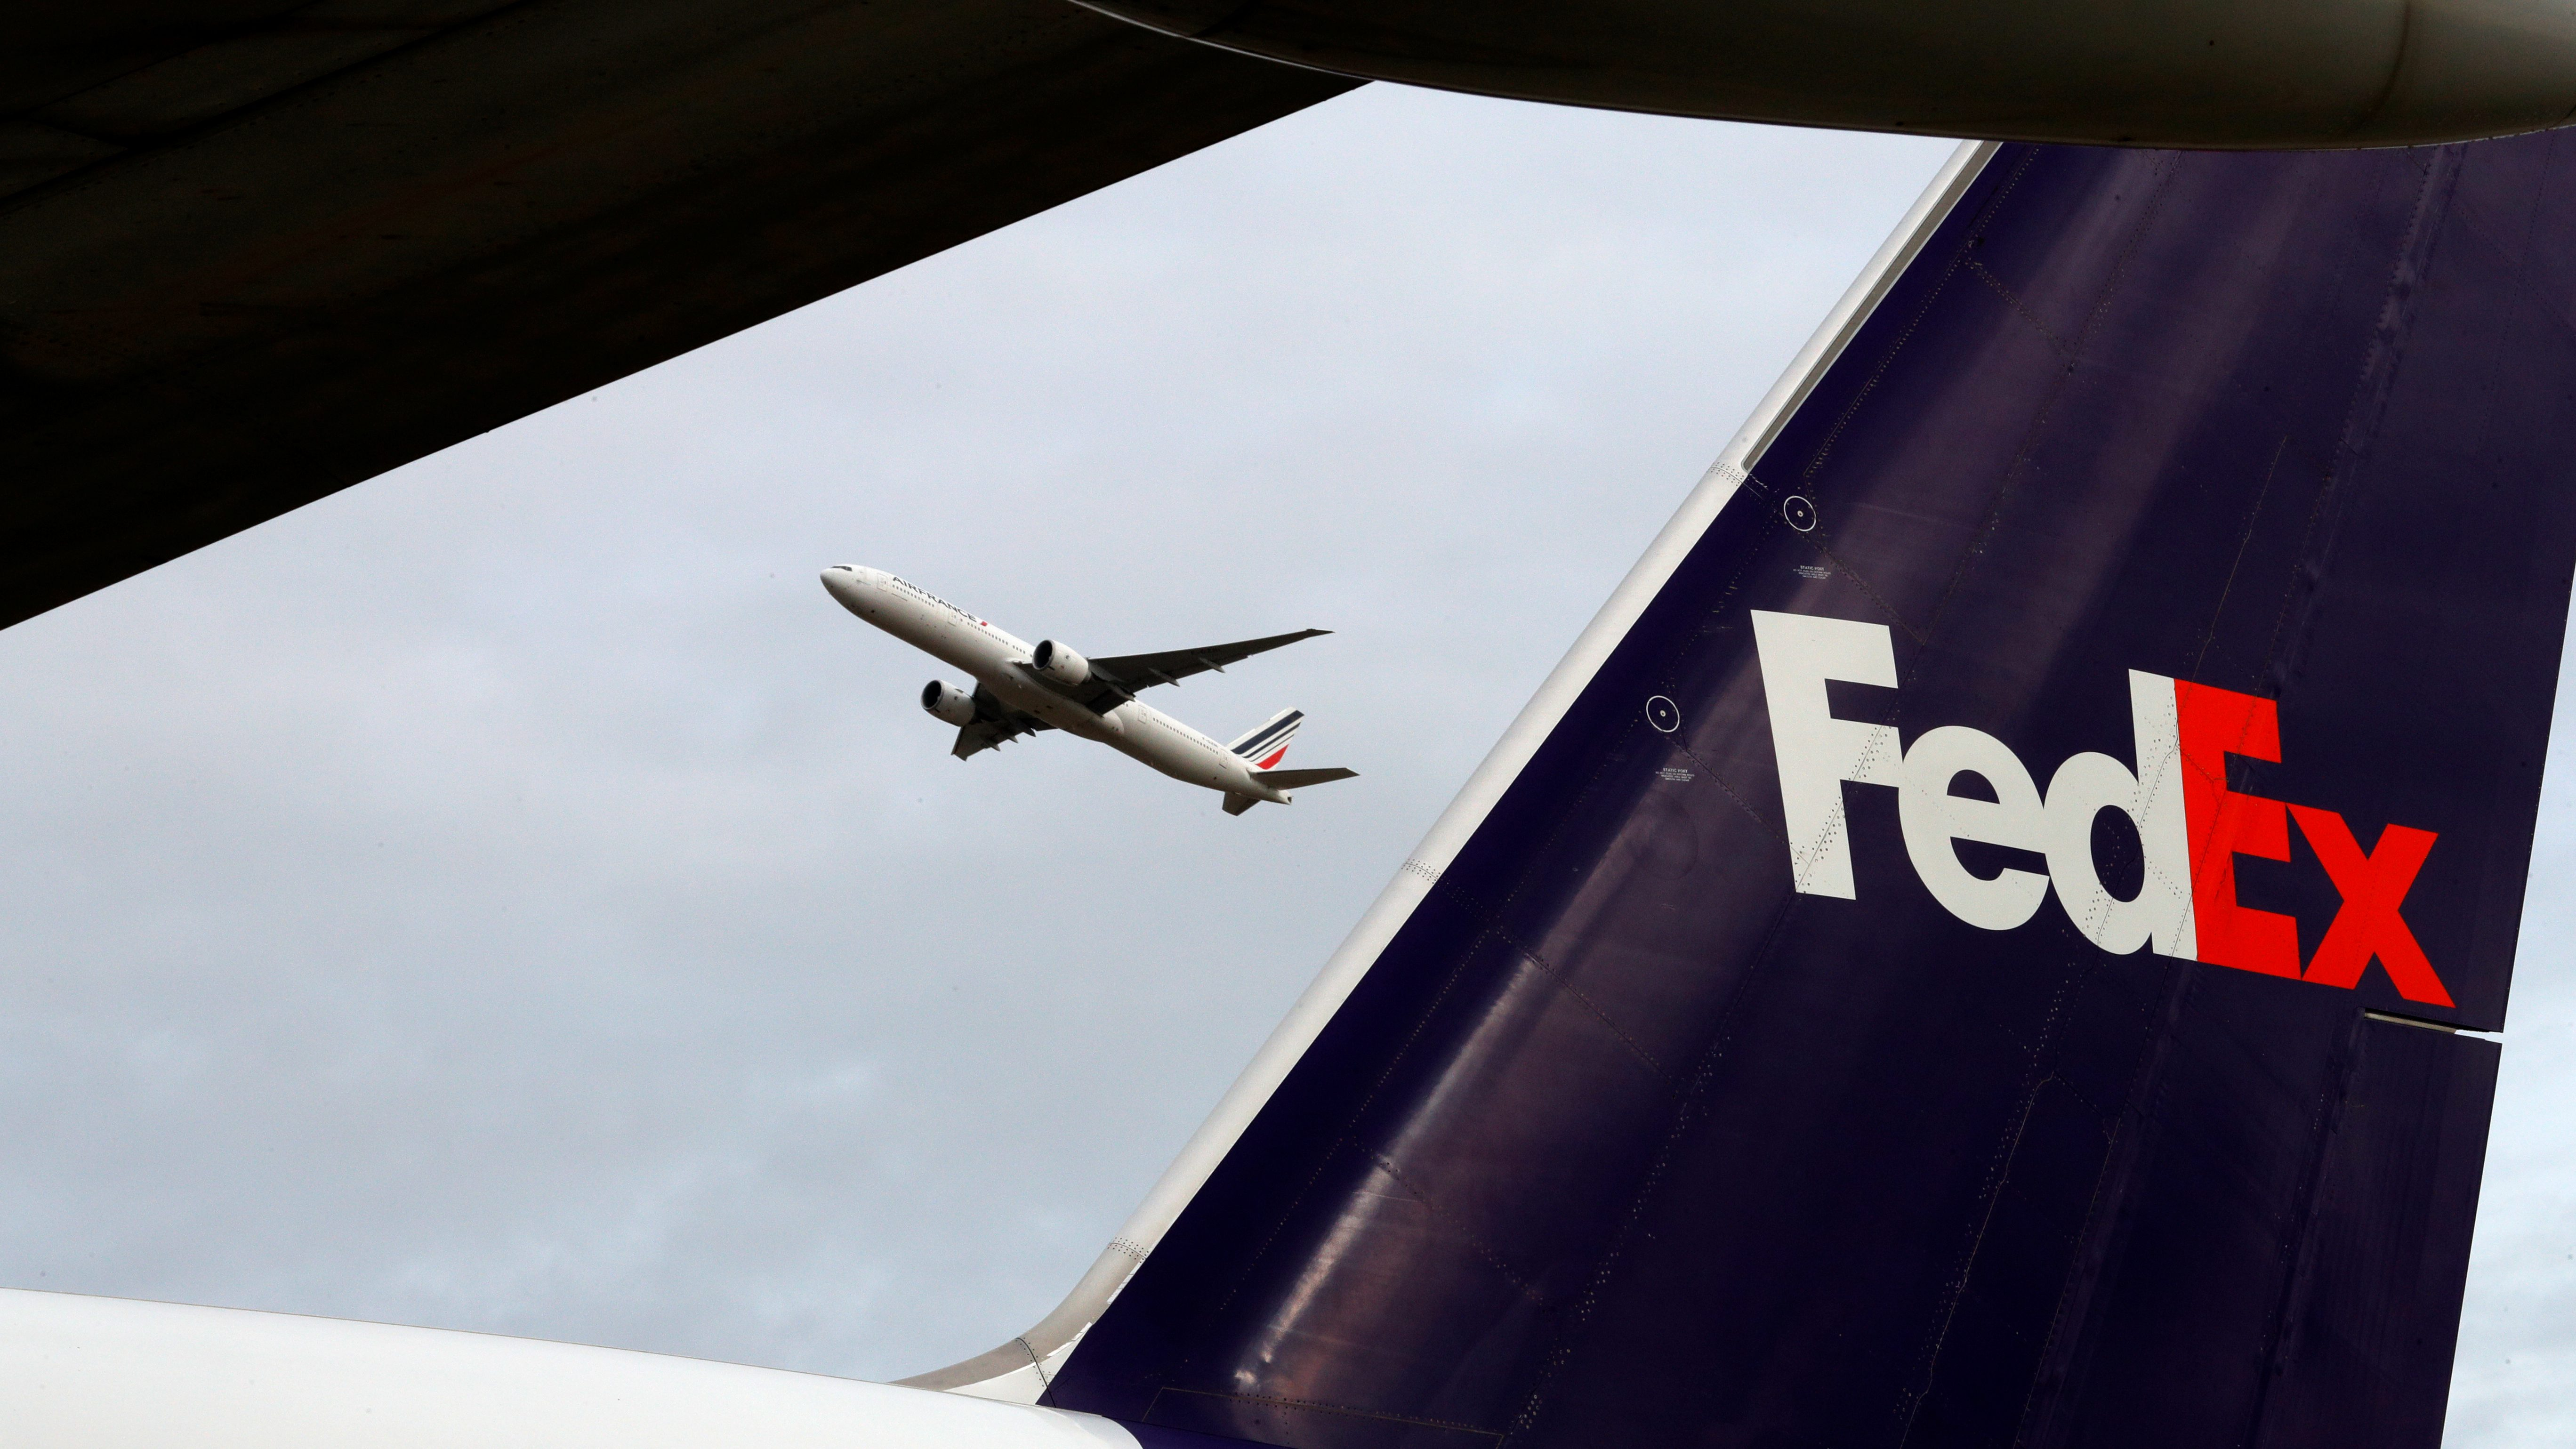 A plane takes off behind the tail of a FedEx plane at the company's hub north of Paris in this 2016 file photo.